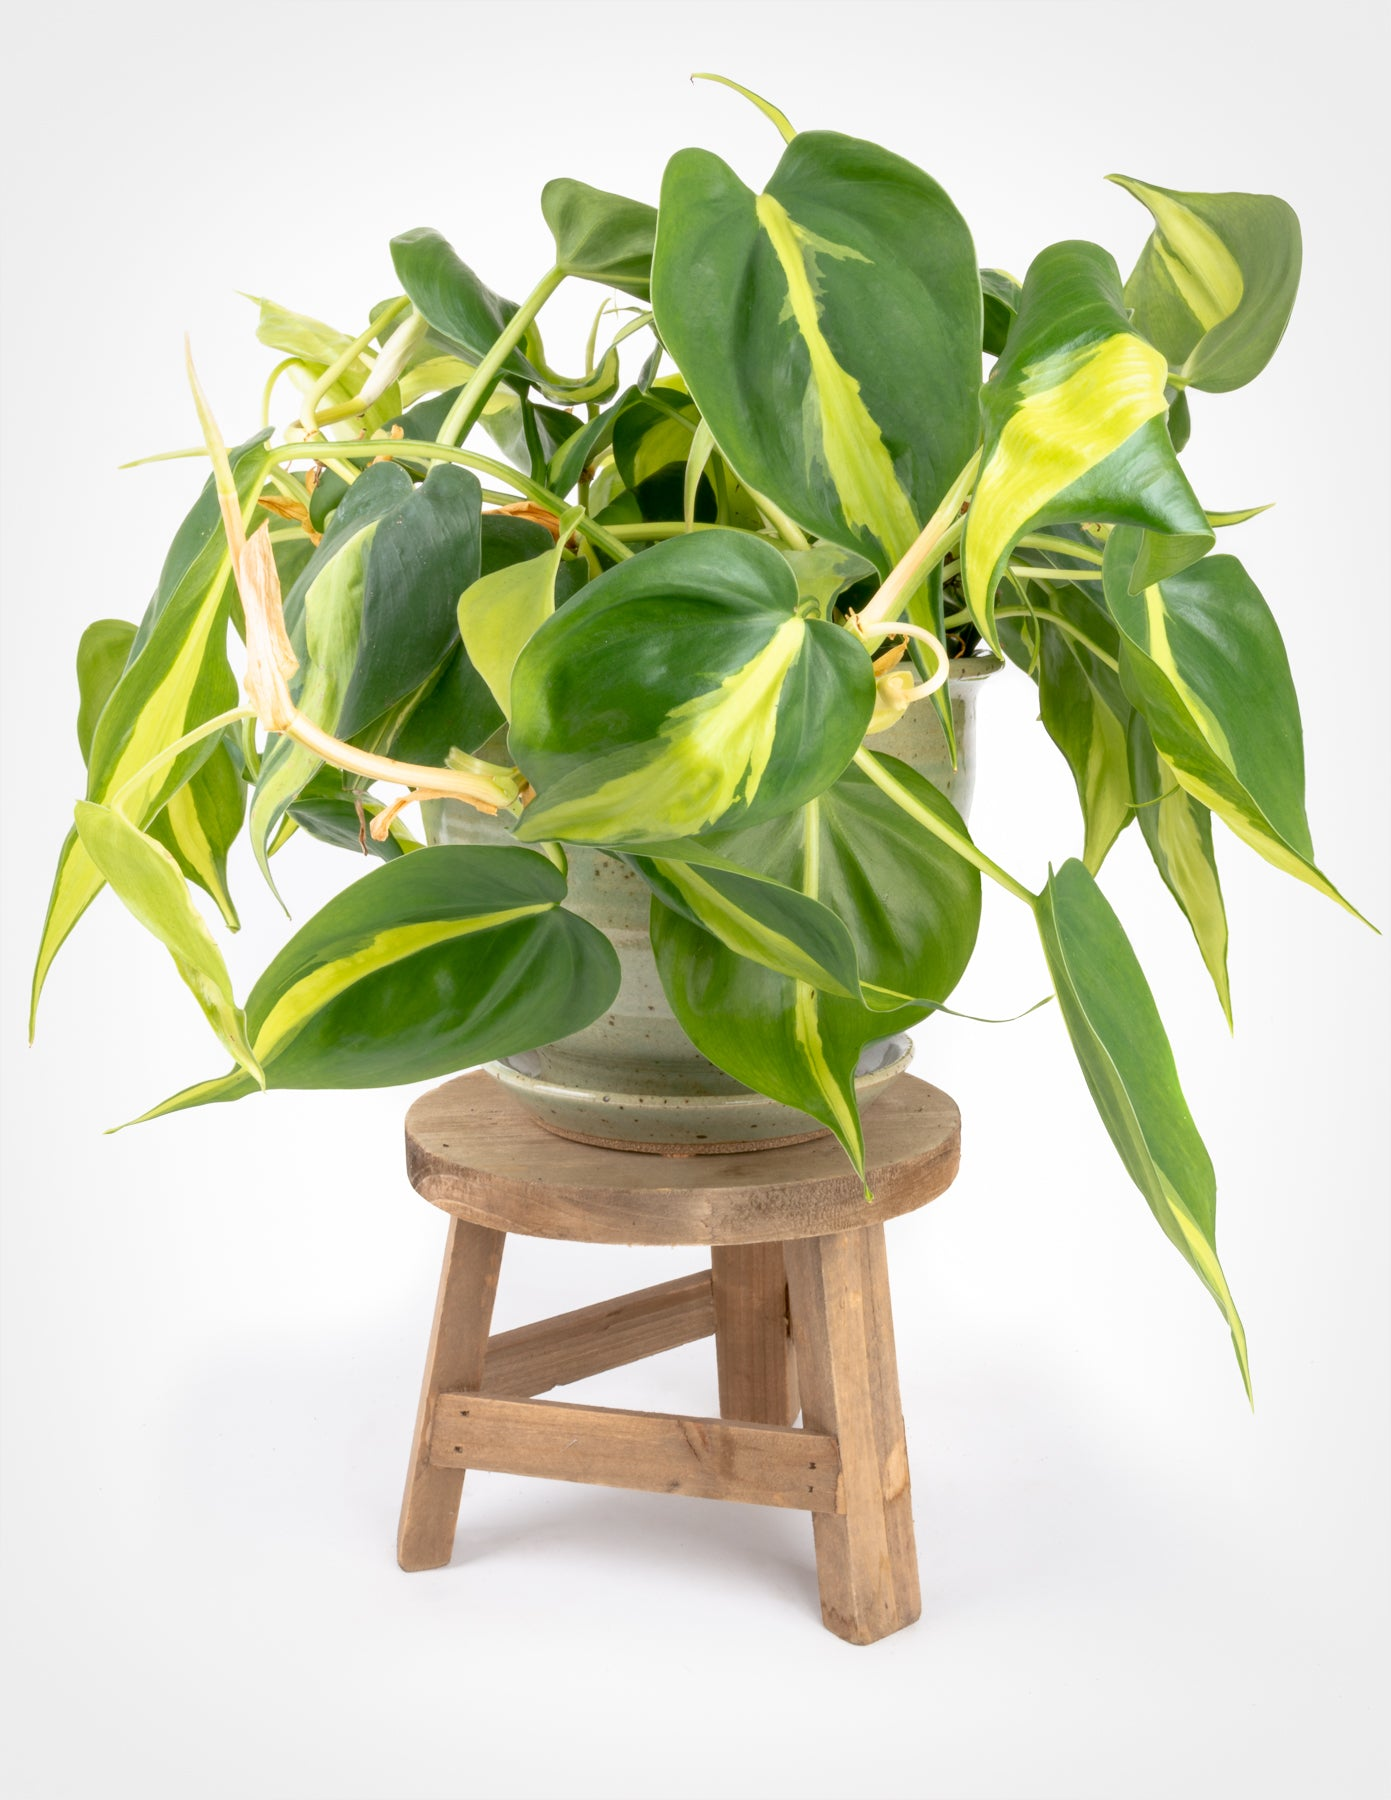 Pack of 4 HeartLeaf Philodendron Brasil /& Green Rooted Cuttings Indoor Plant